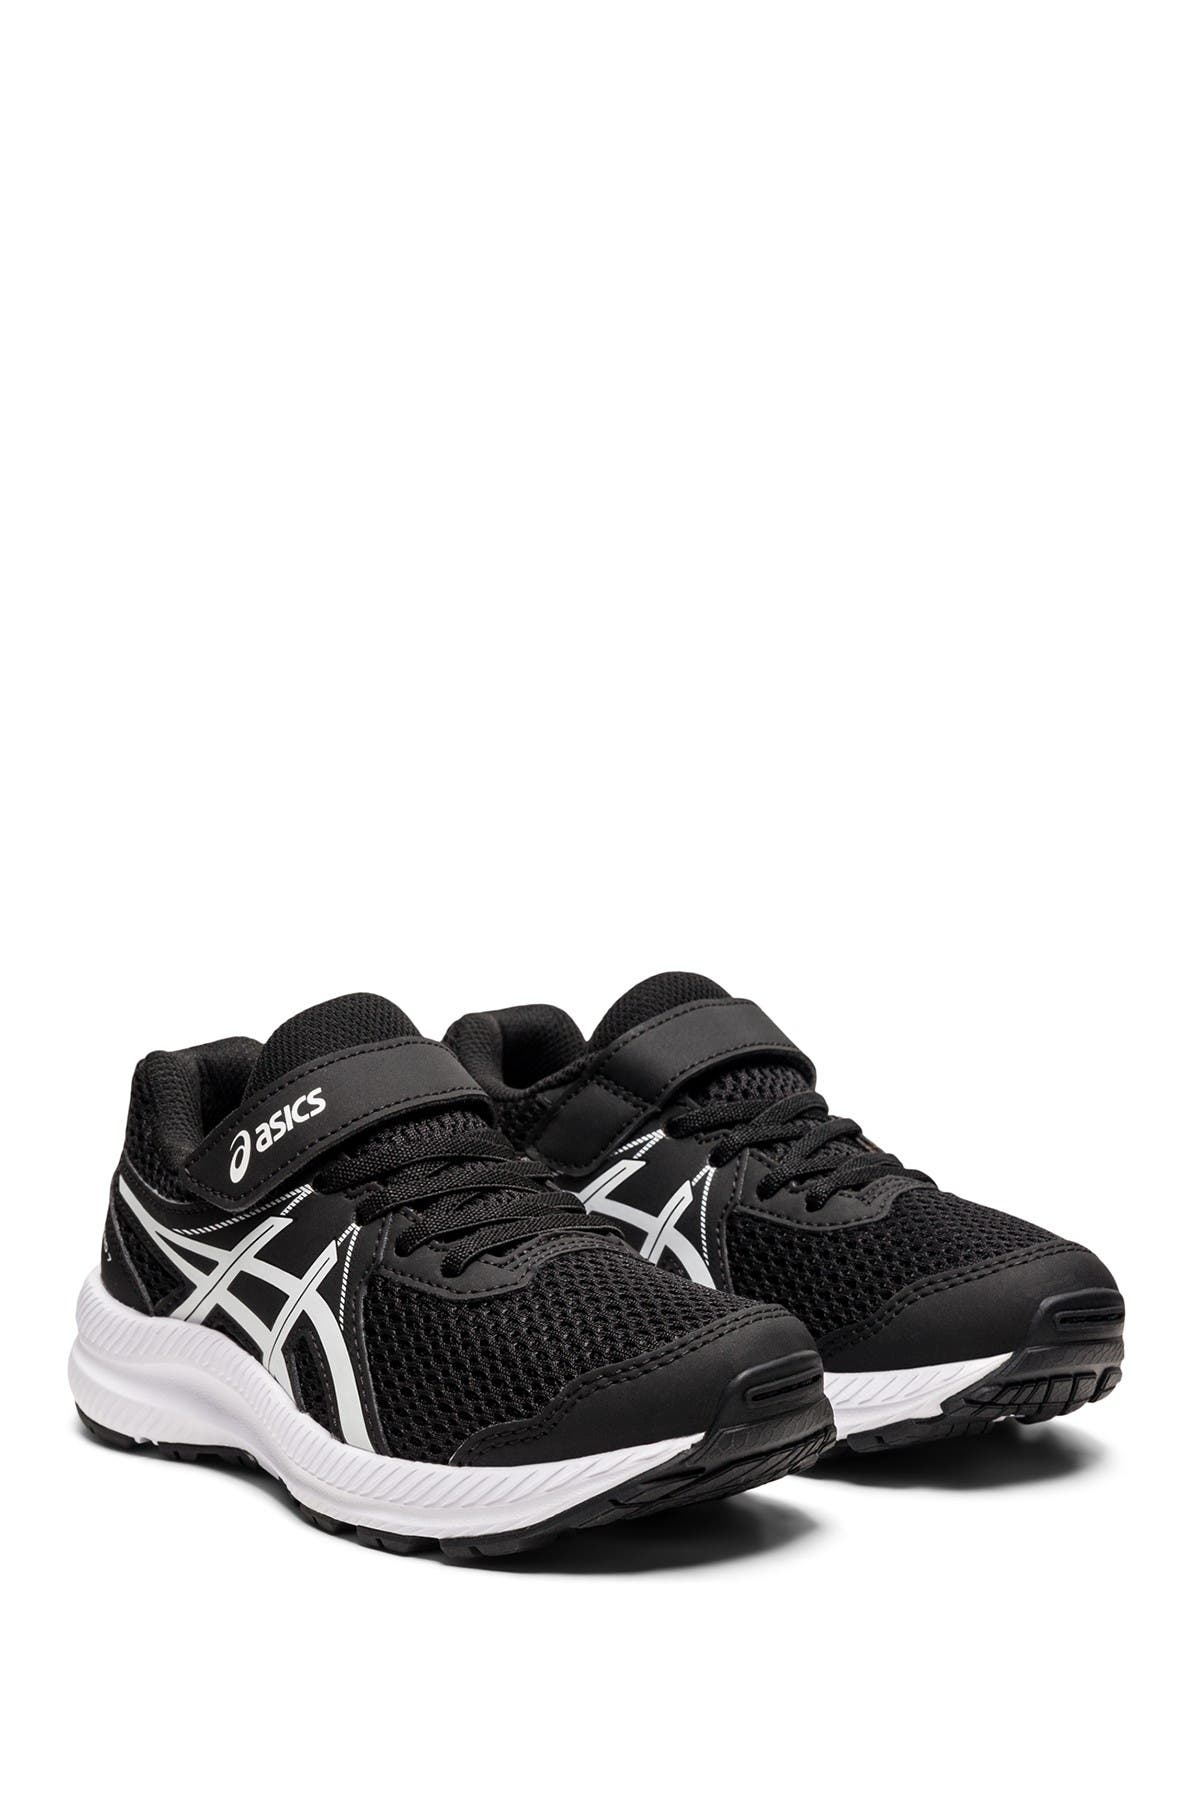 Asics Shoes CONTEND 7 SNEAKER